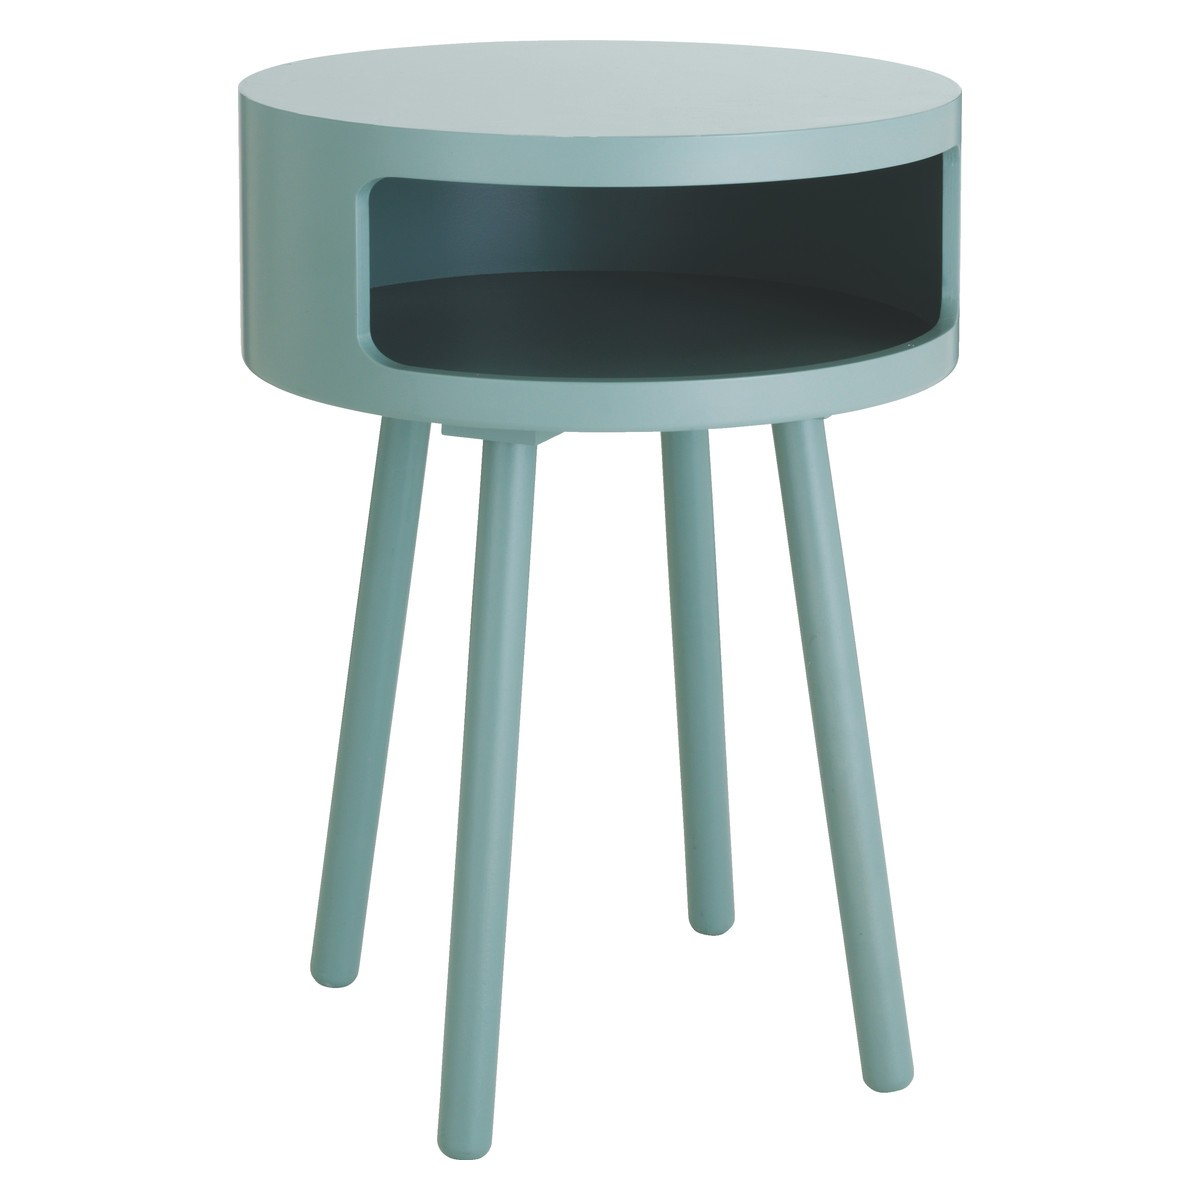 side tables nest small glass dark blue accent table bumble sage green with storage shelf beech laminated cotton tablecloth decorative lamps bass drum pedal lucite sofa tiffany